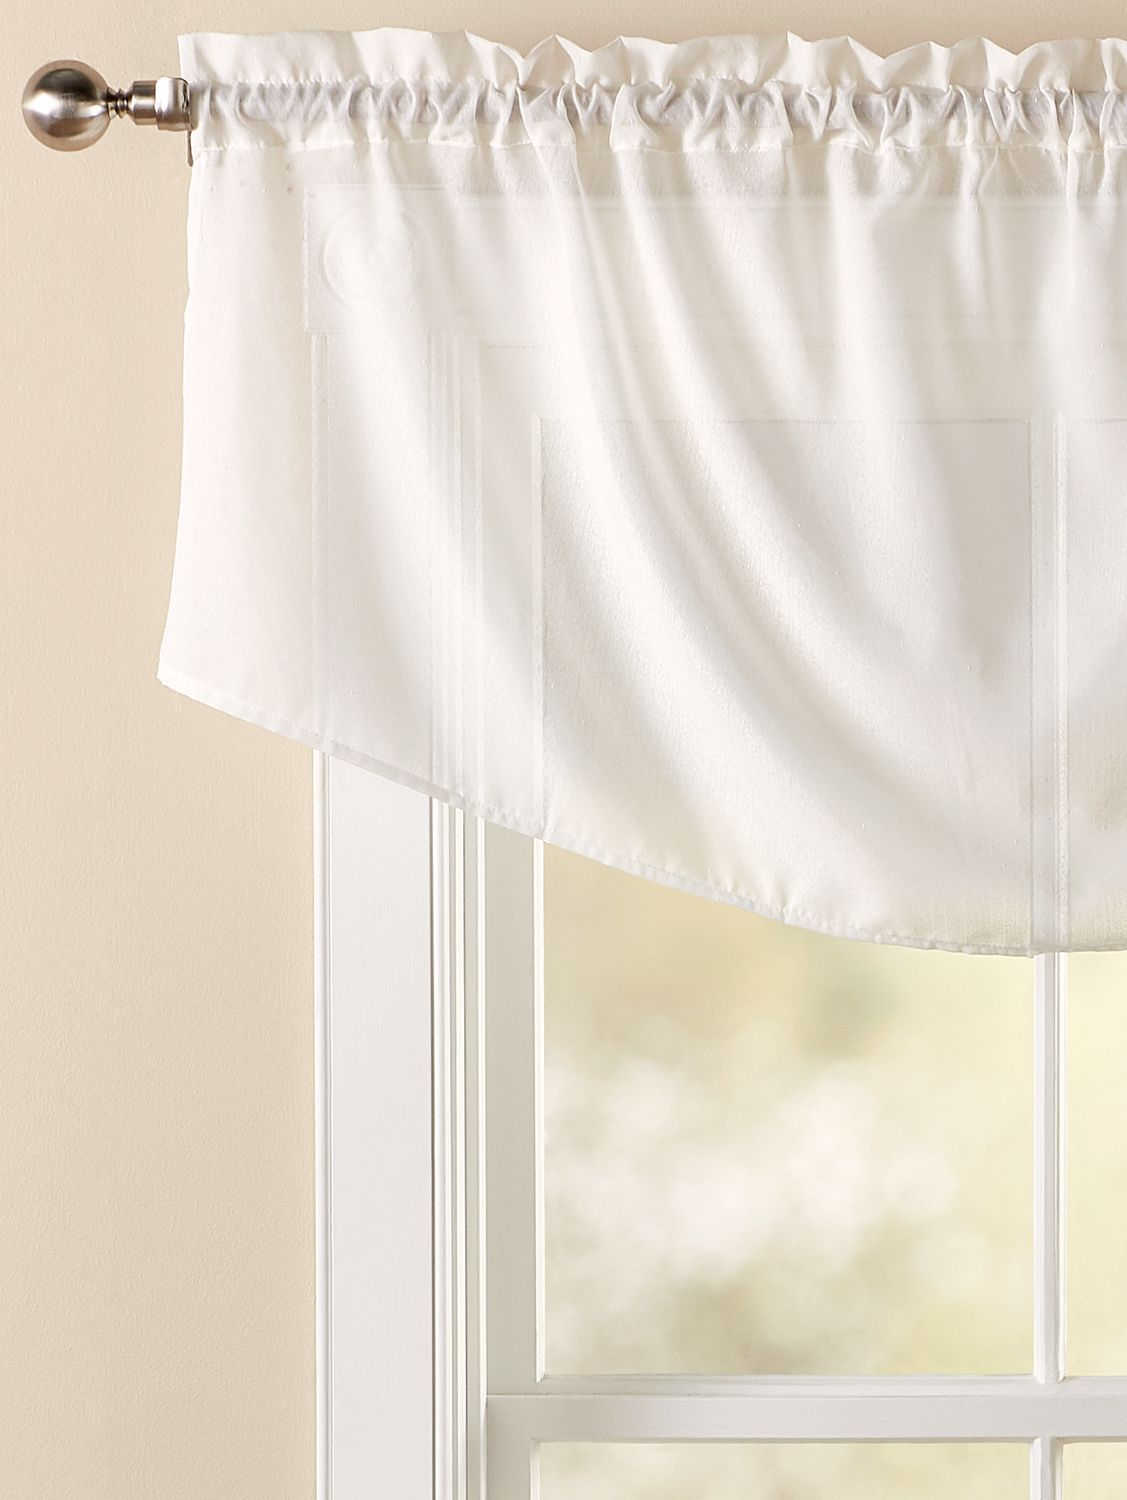 Sandy Semi Sheer Rod Pocket Cascade Valance In 2020 Valance